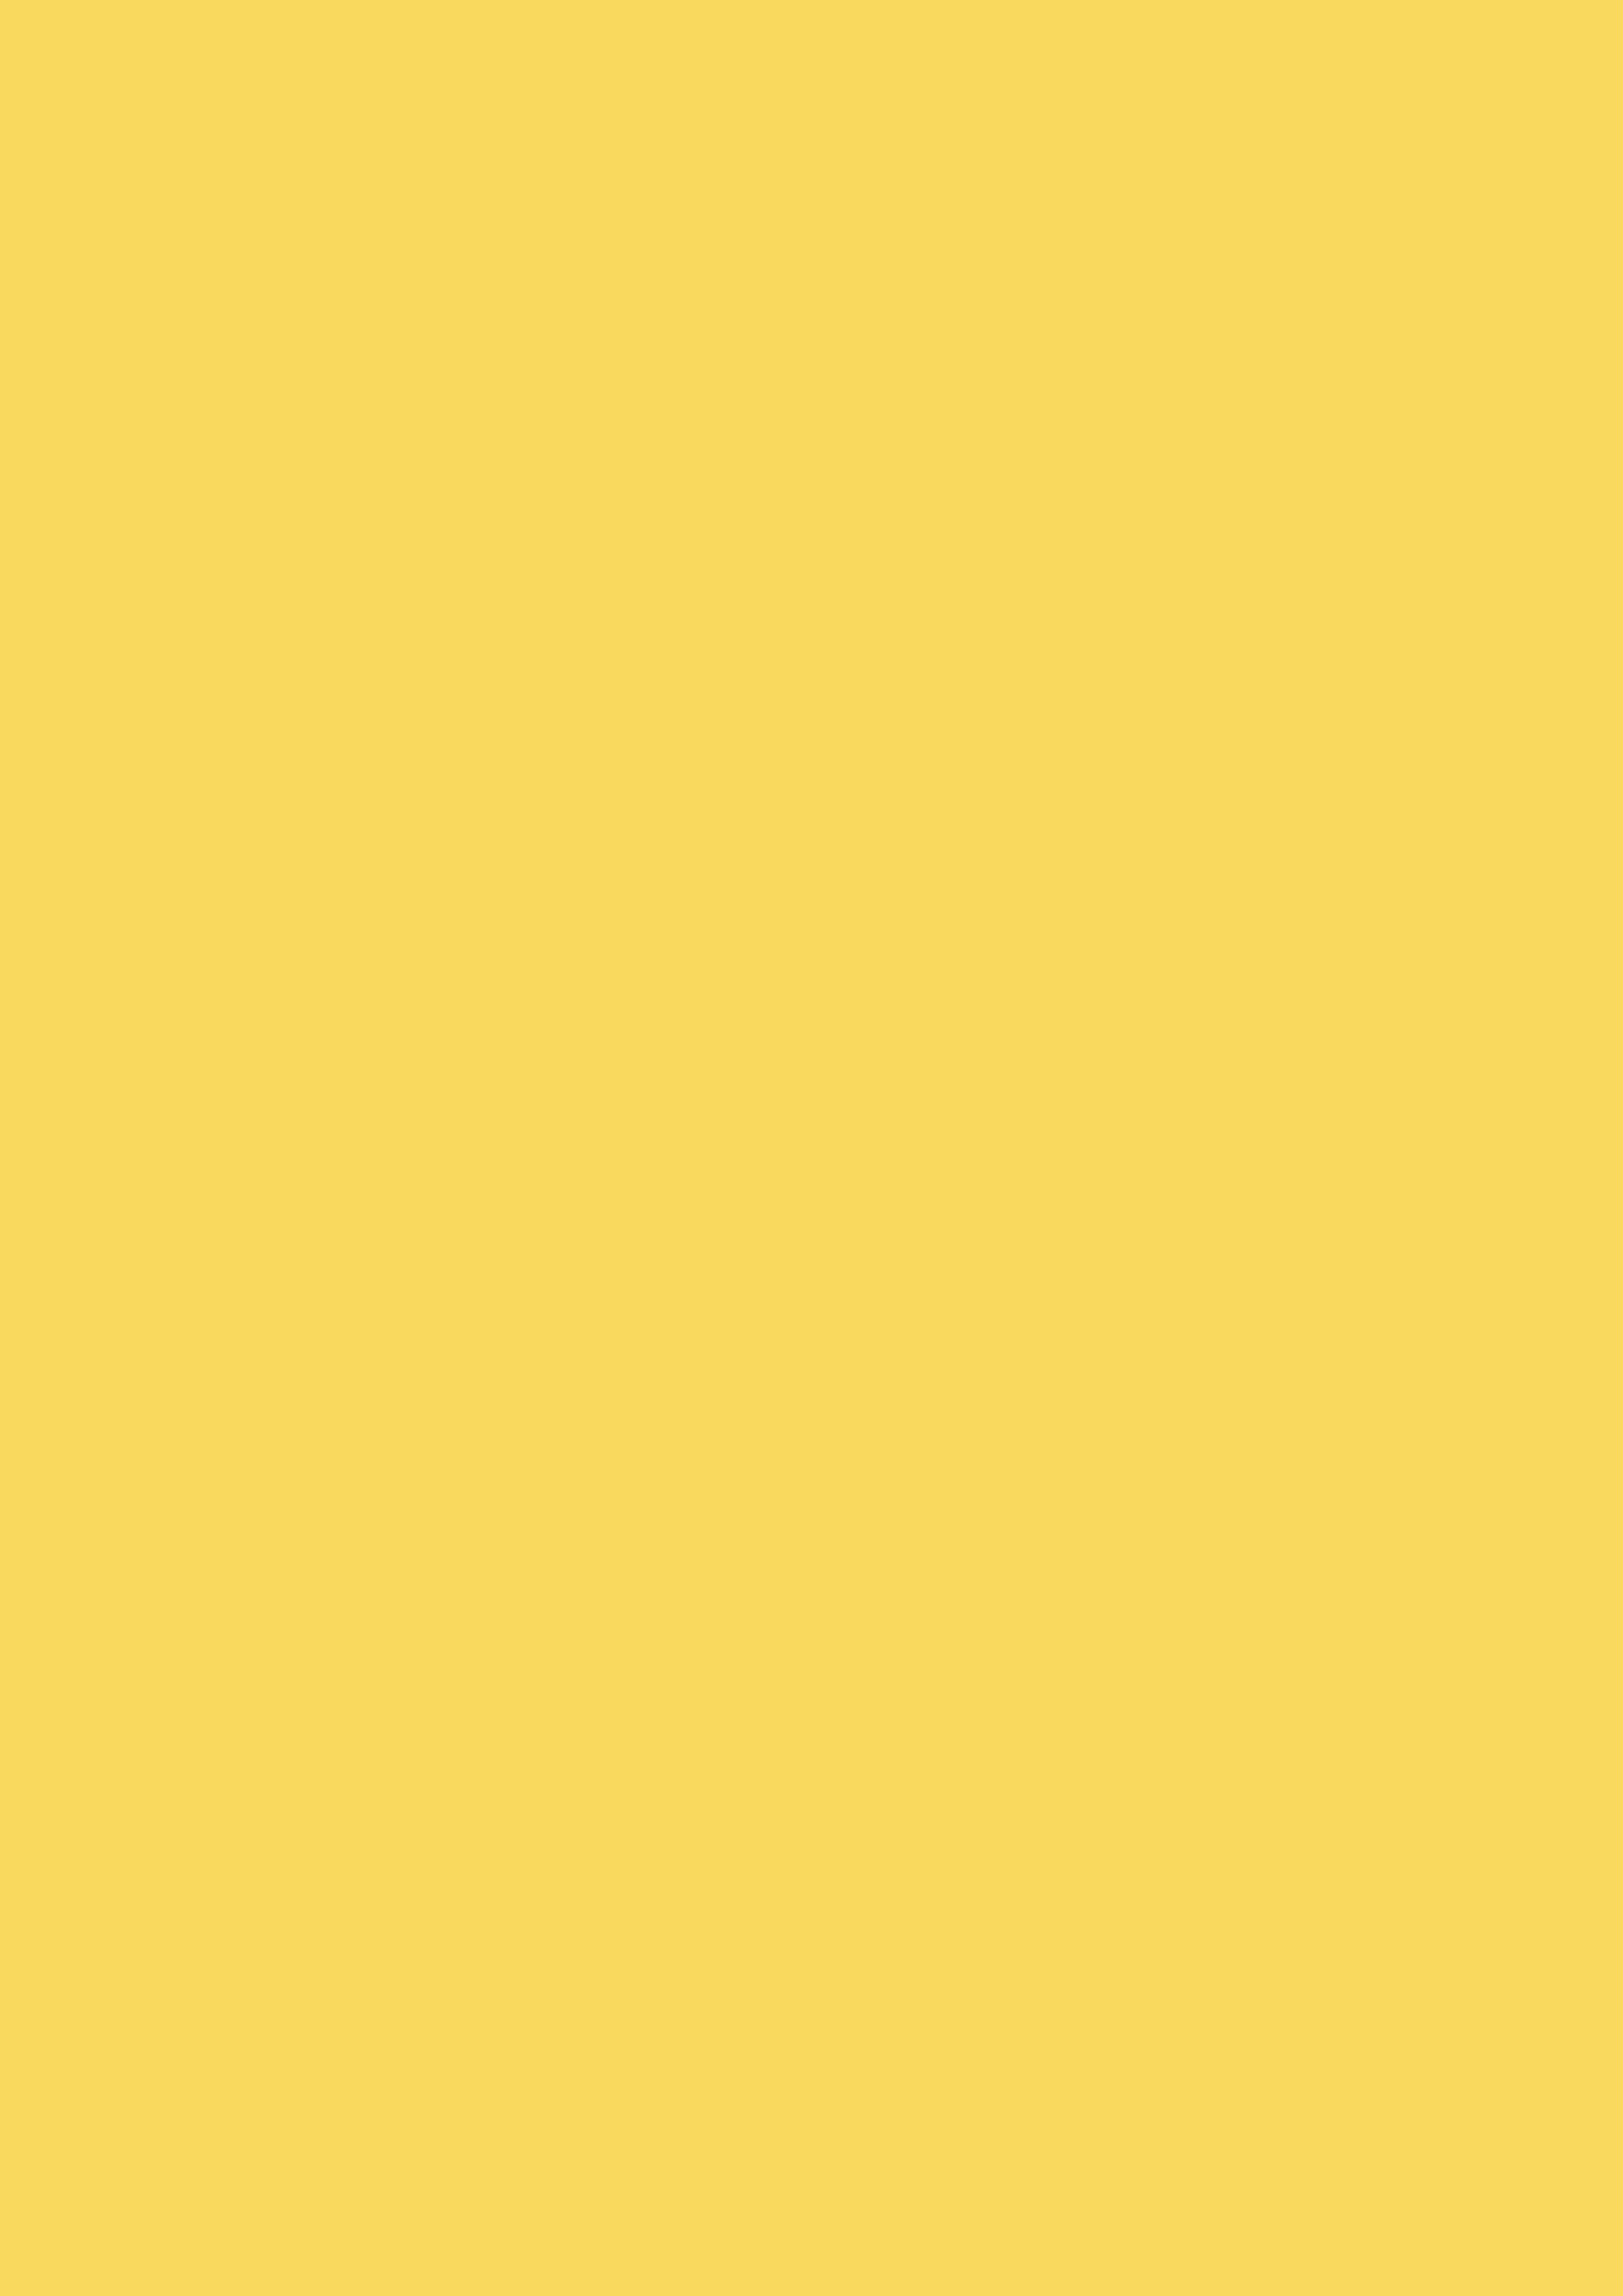 2480x3508 Royal Yellow Solid Color Background